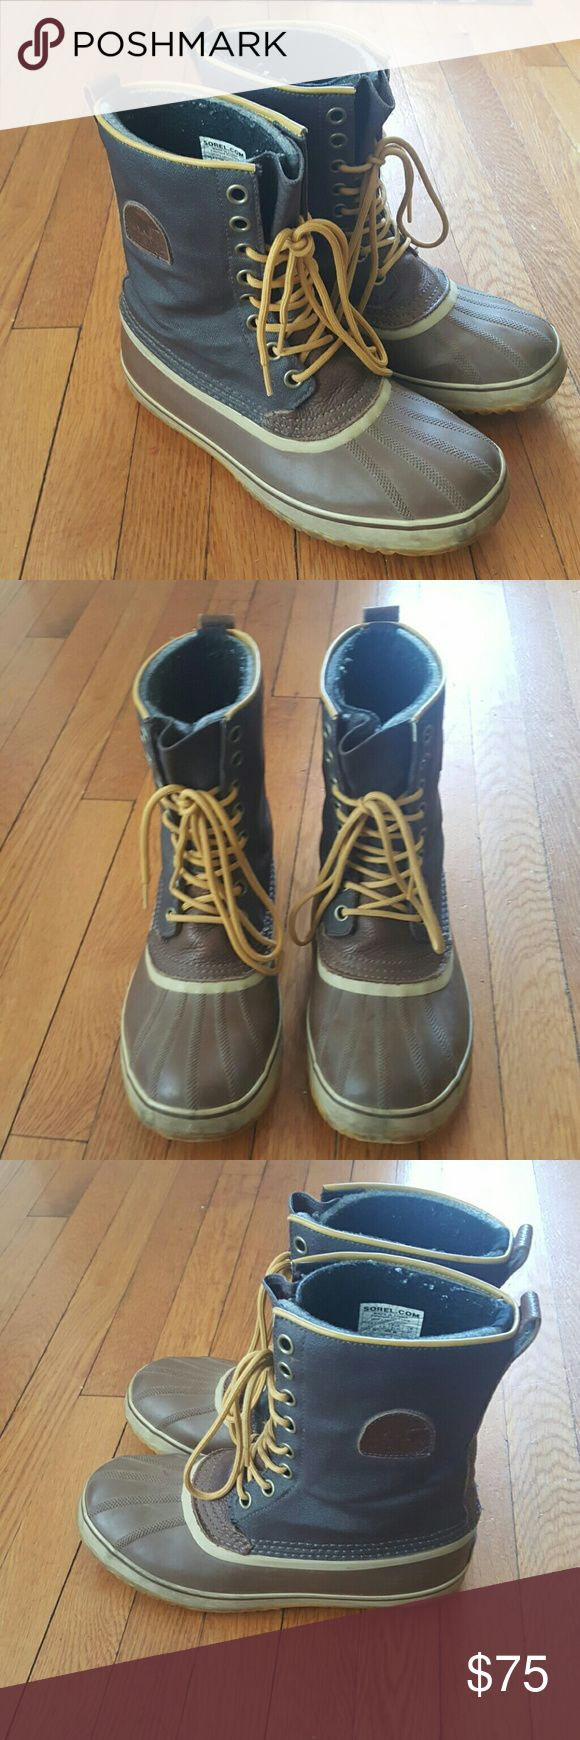 25 Best Ideas About Pac Boots On Pinterest Sorel